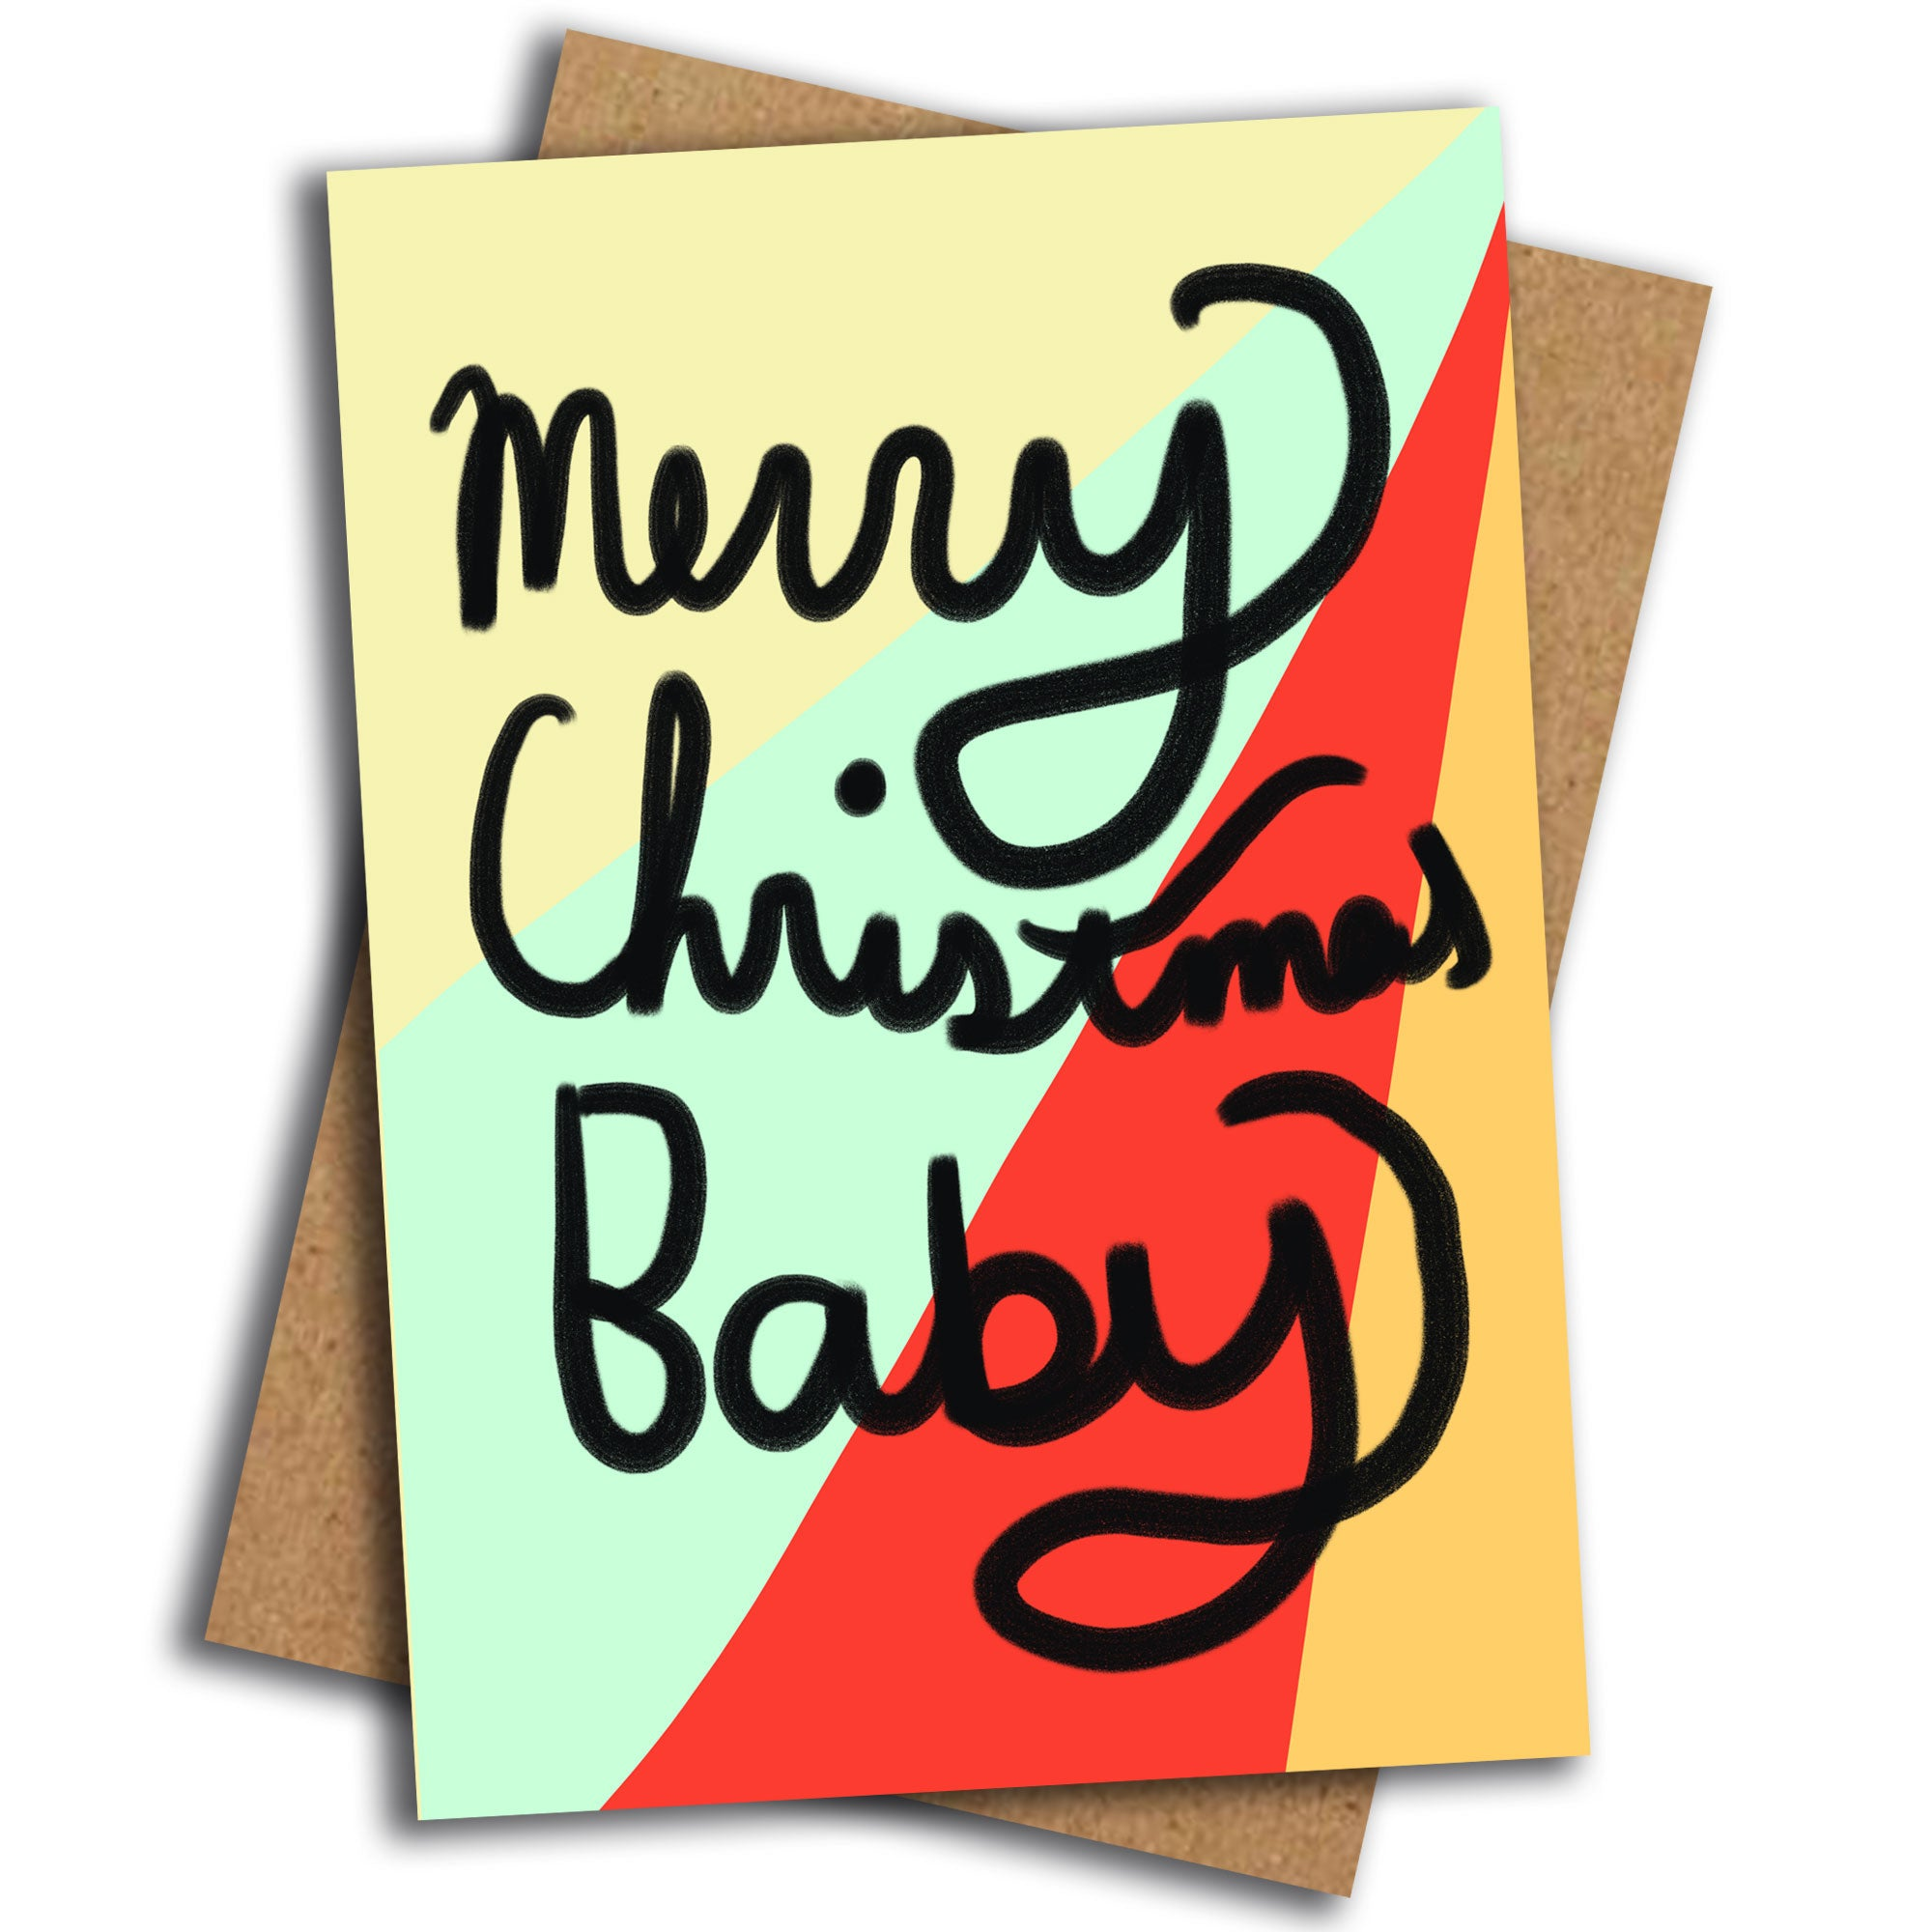 Merry Christmas Baby card